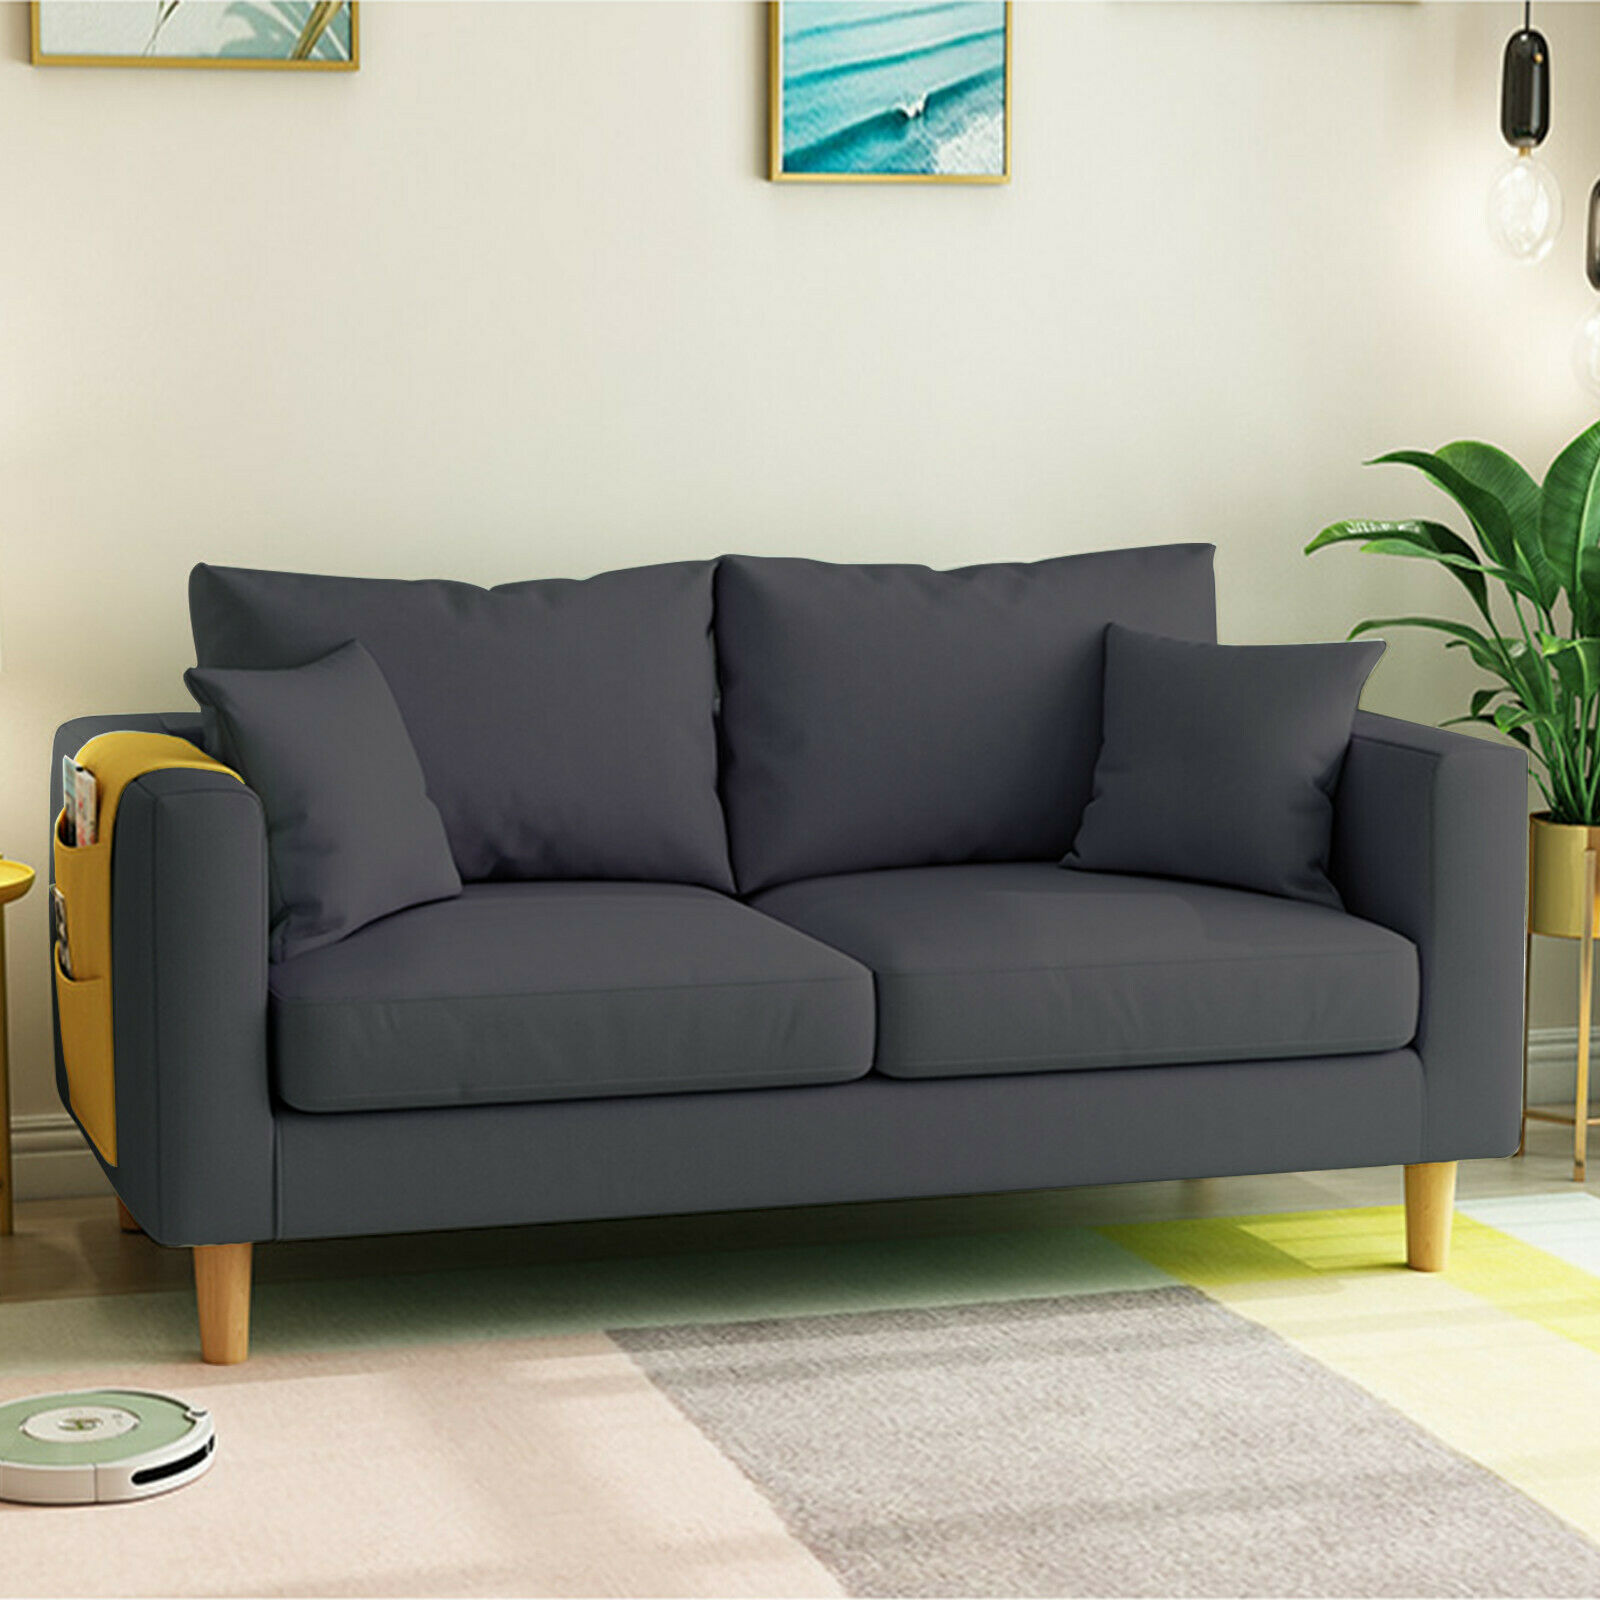 Home Office Sleeper Sofa Bed Couch Pull Out Futon Sofas Daybed Recliner Couches